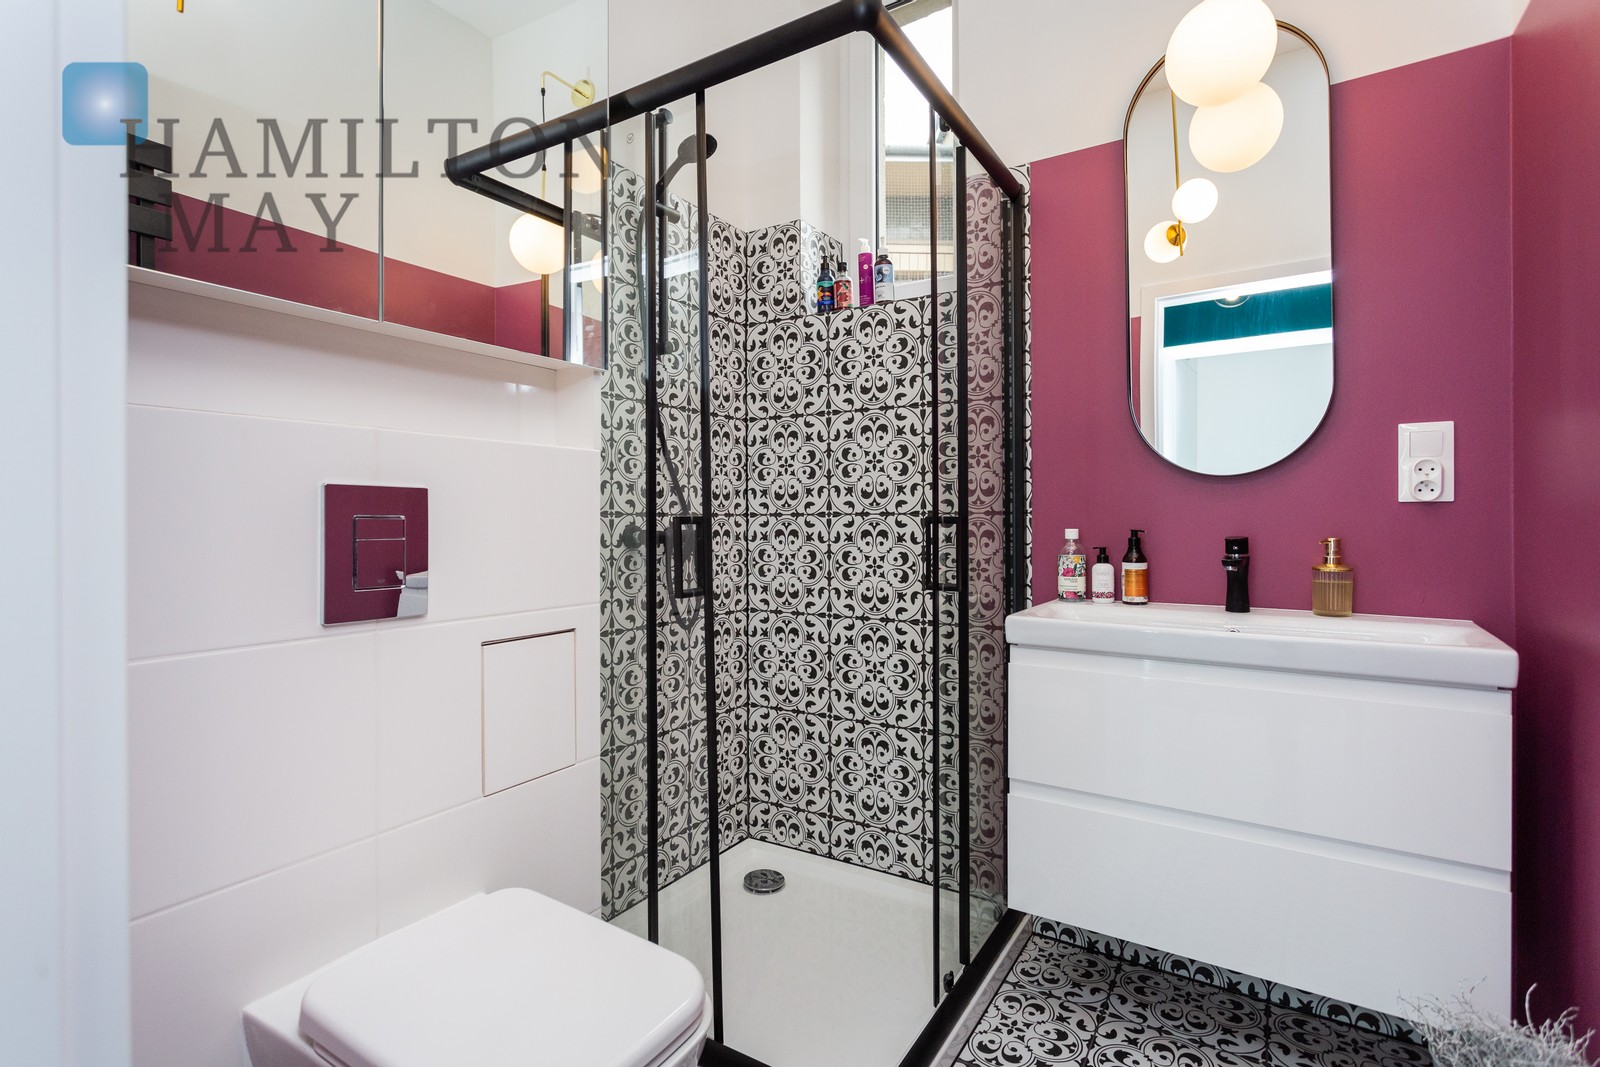 Stylish and modern 3-room apartment in a tenement house at Osiedle Oficerski Krakow for rent